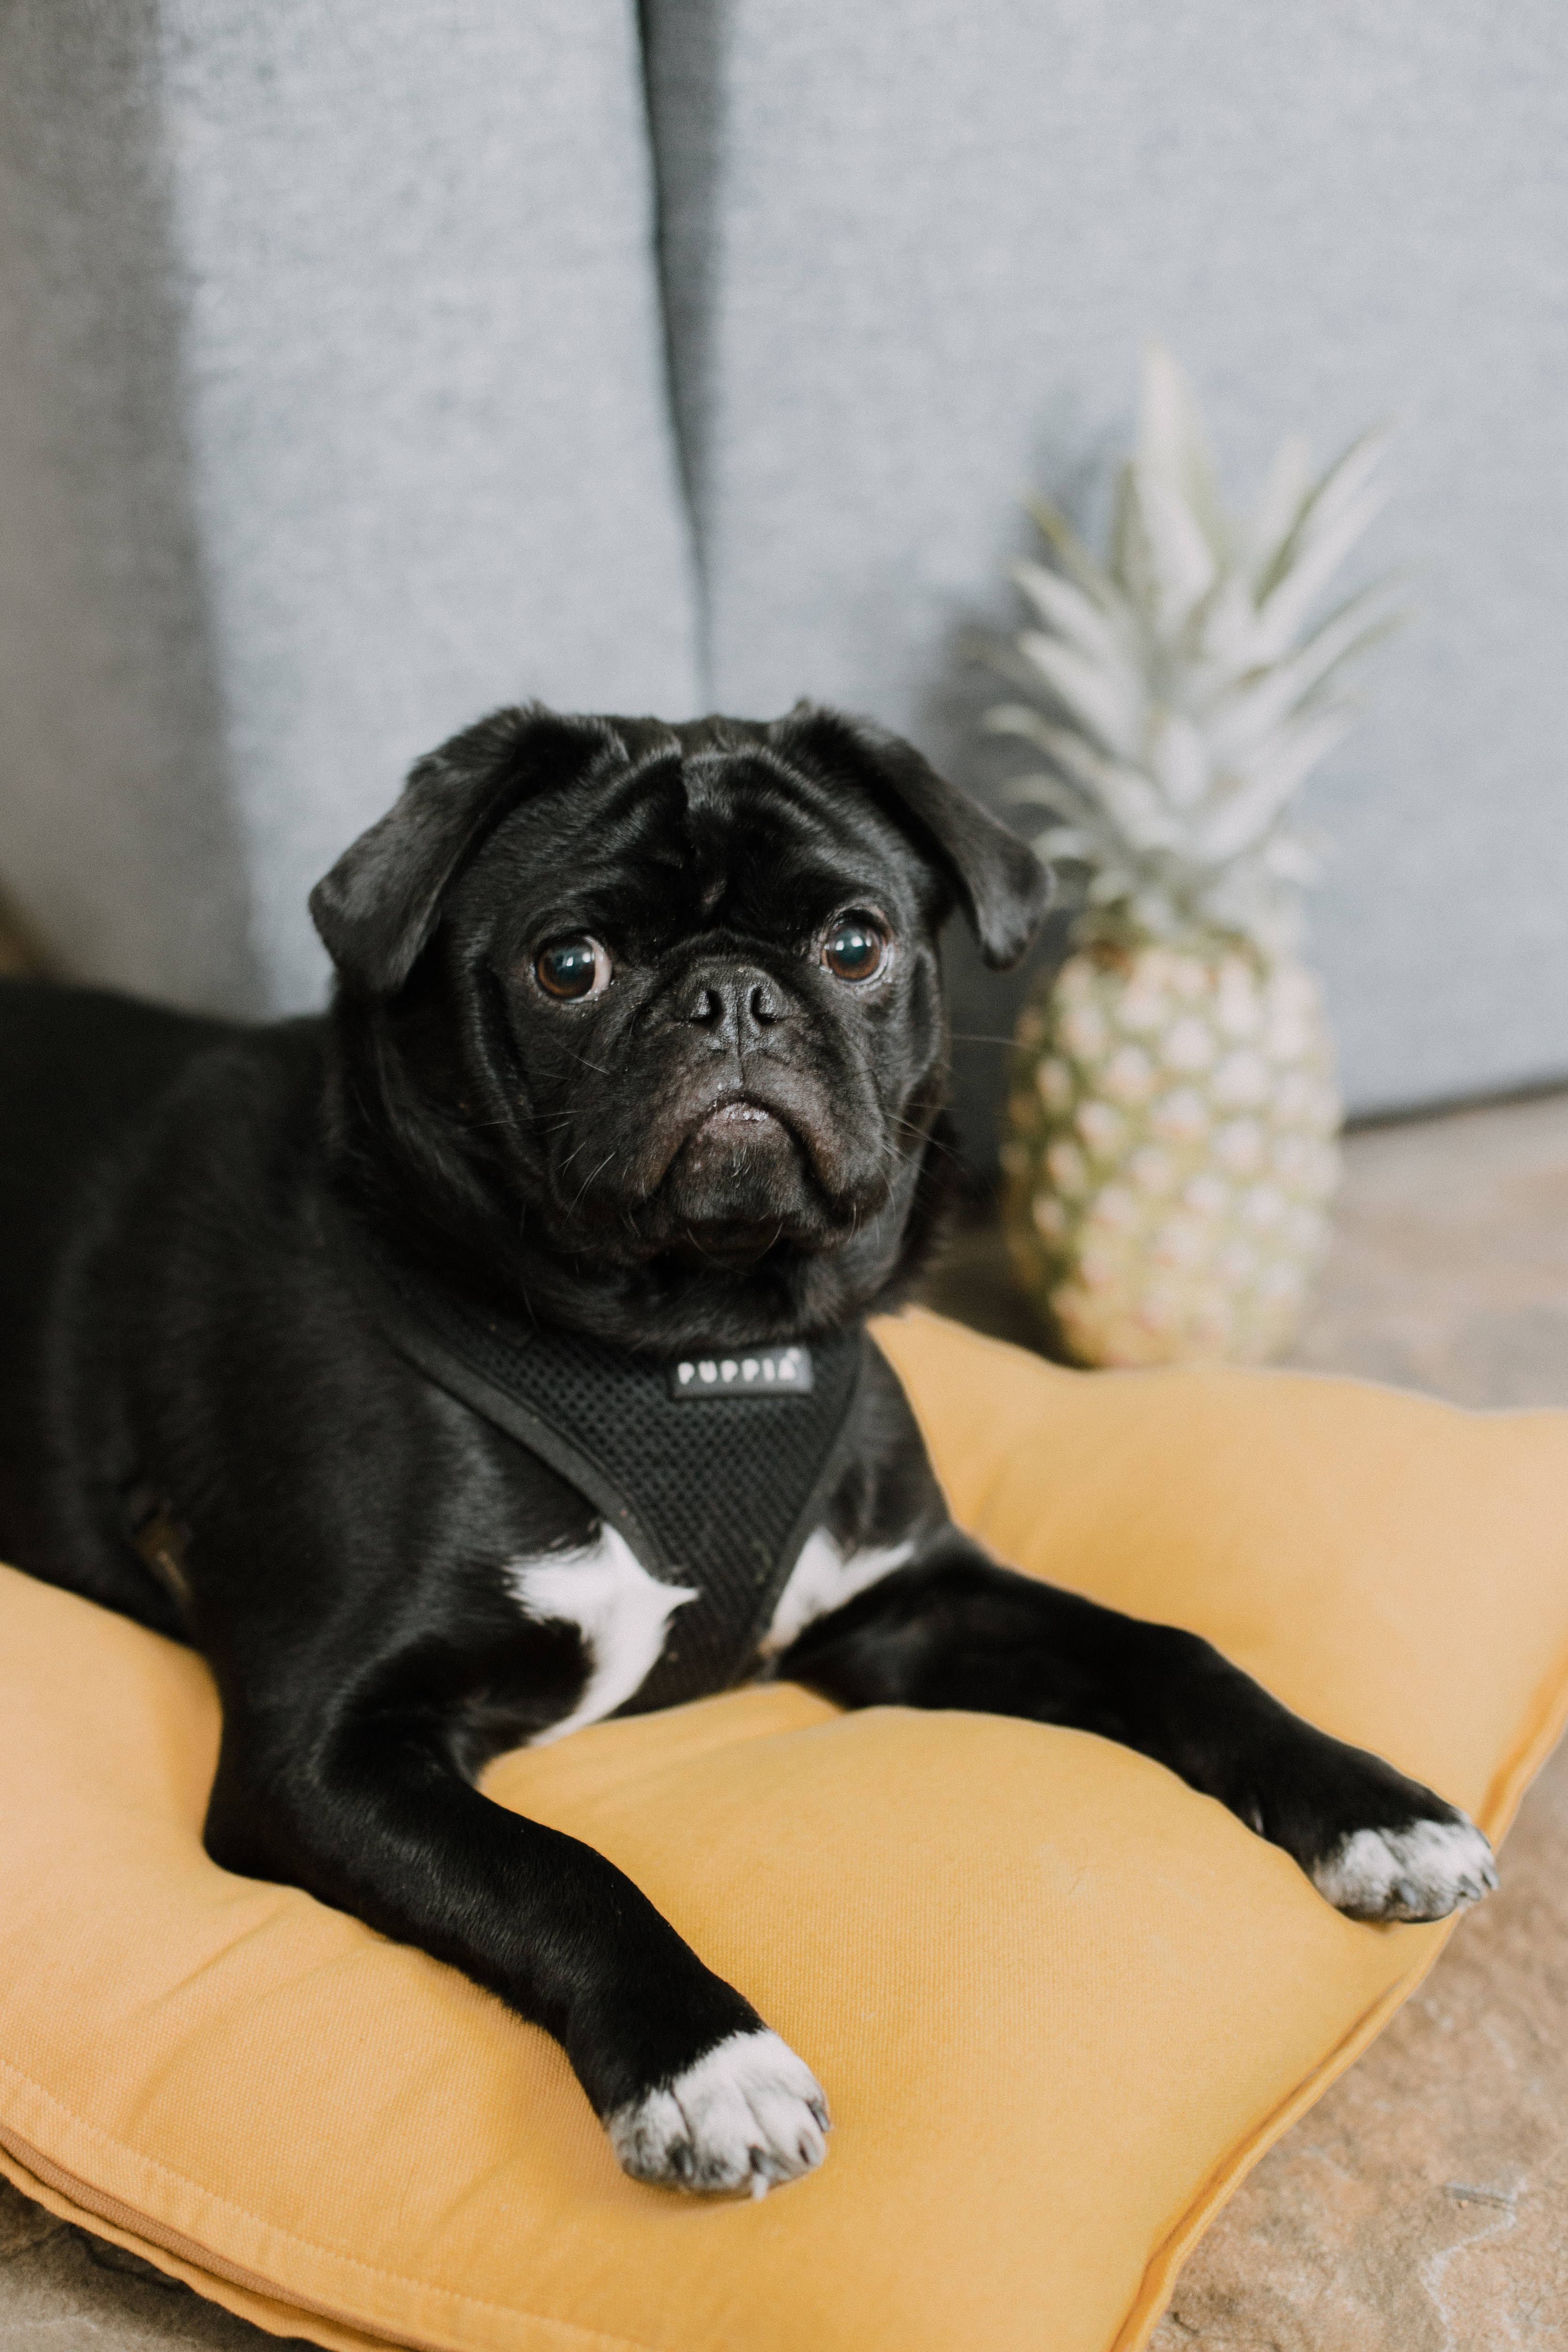 67256 download wallpaper Animals, Pug, Funny, Dog, Muzzle, Pet screensavers and pictures for free